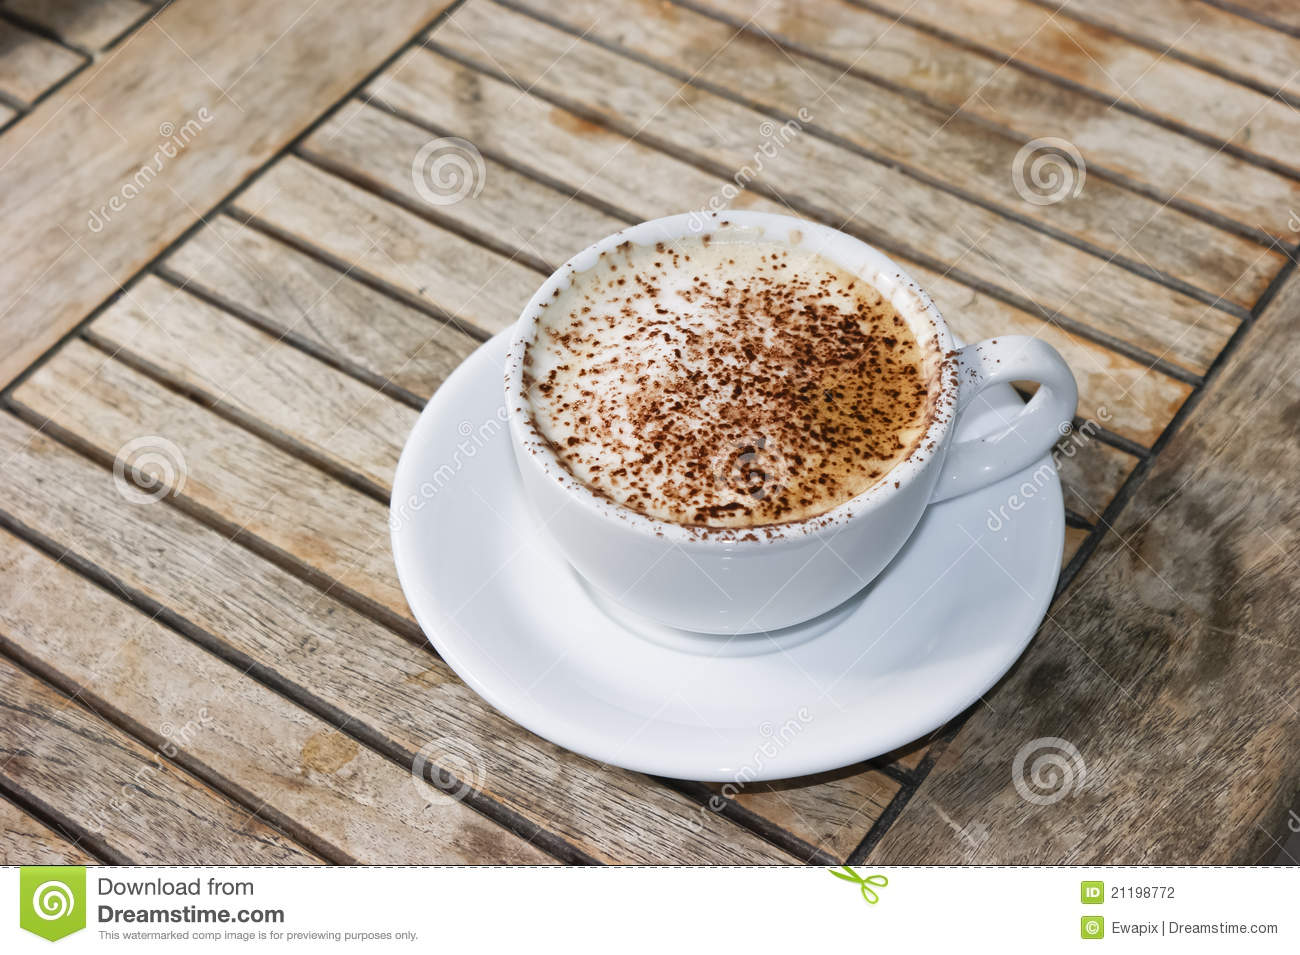 Cappuccino on wooden table